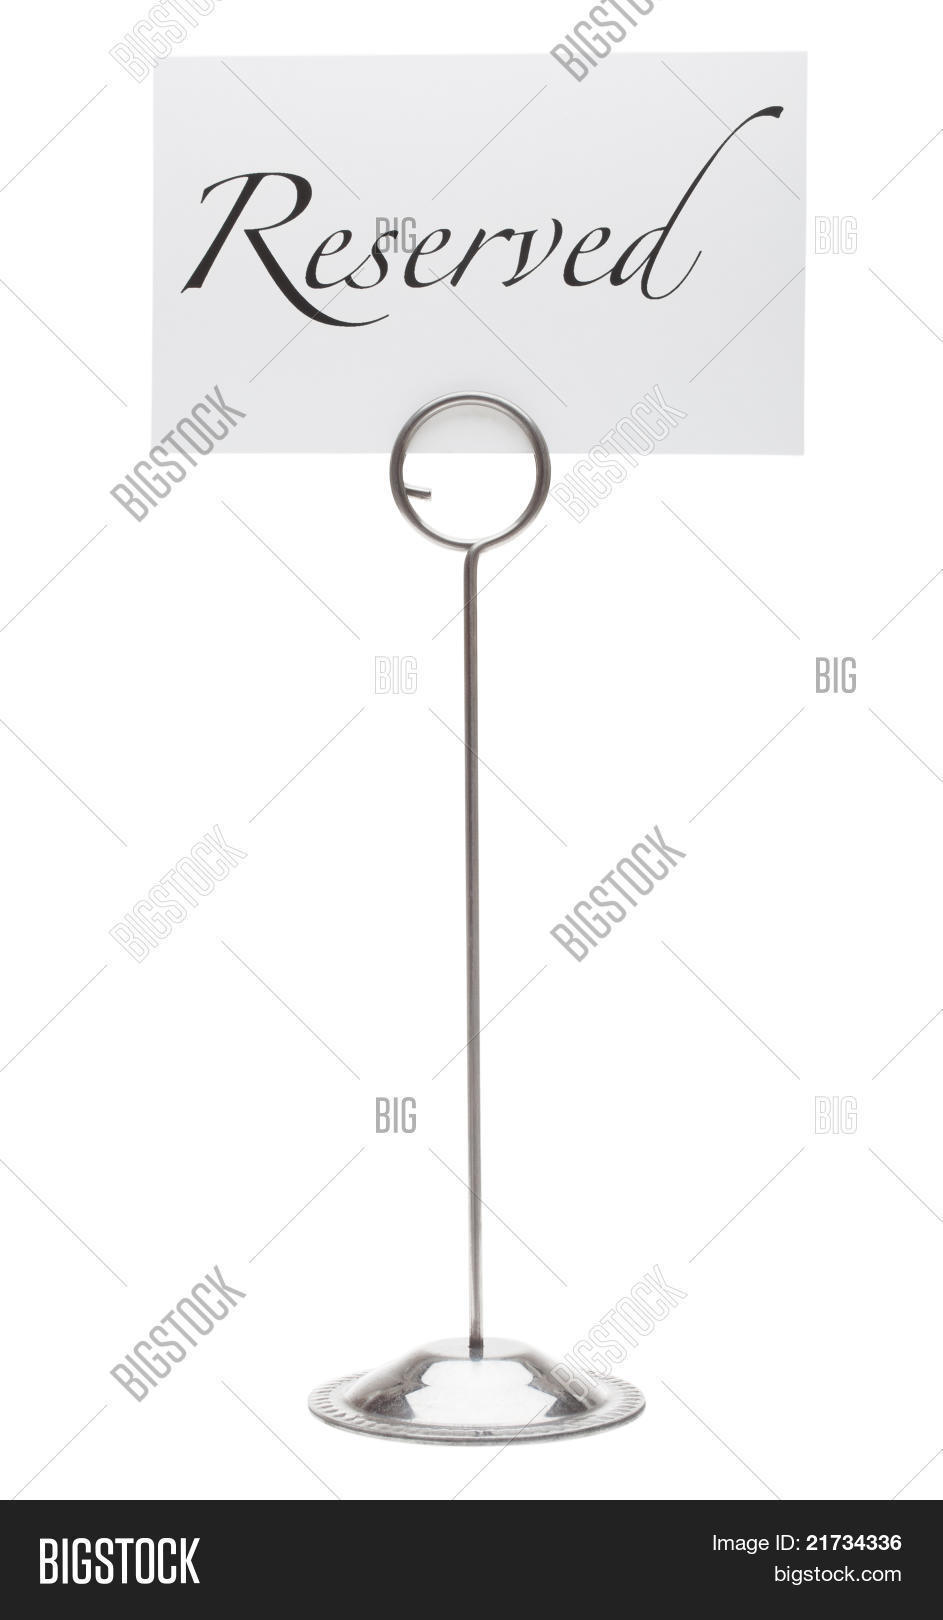 Reserved Table Stand Image Photo Free Trial Bigstock - Restaurant table stands